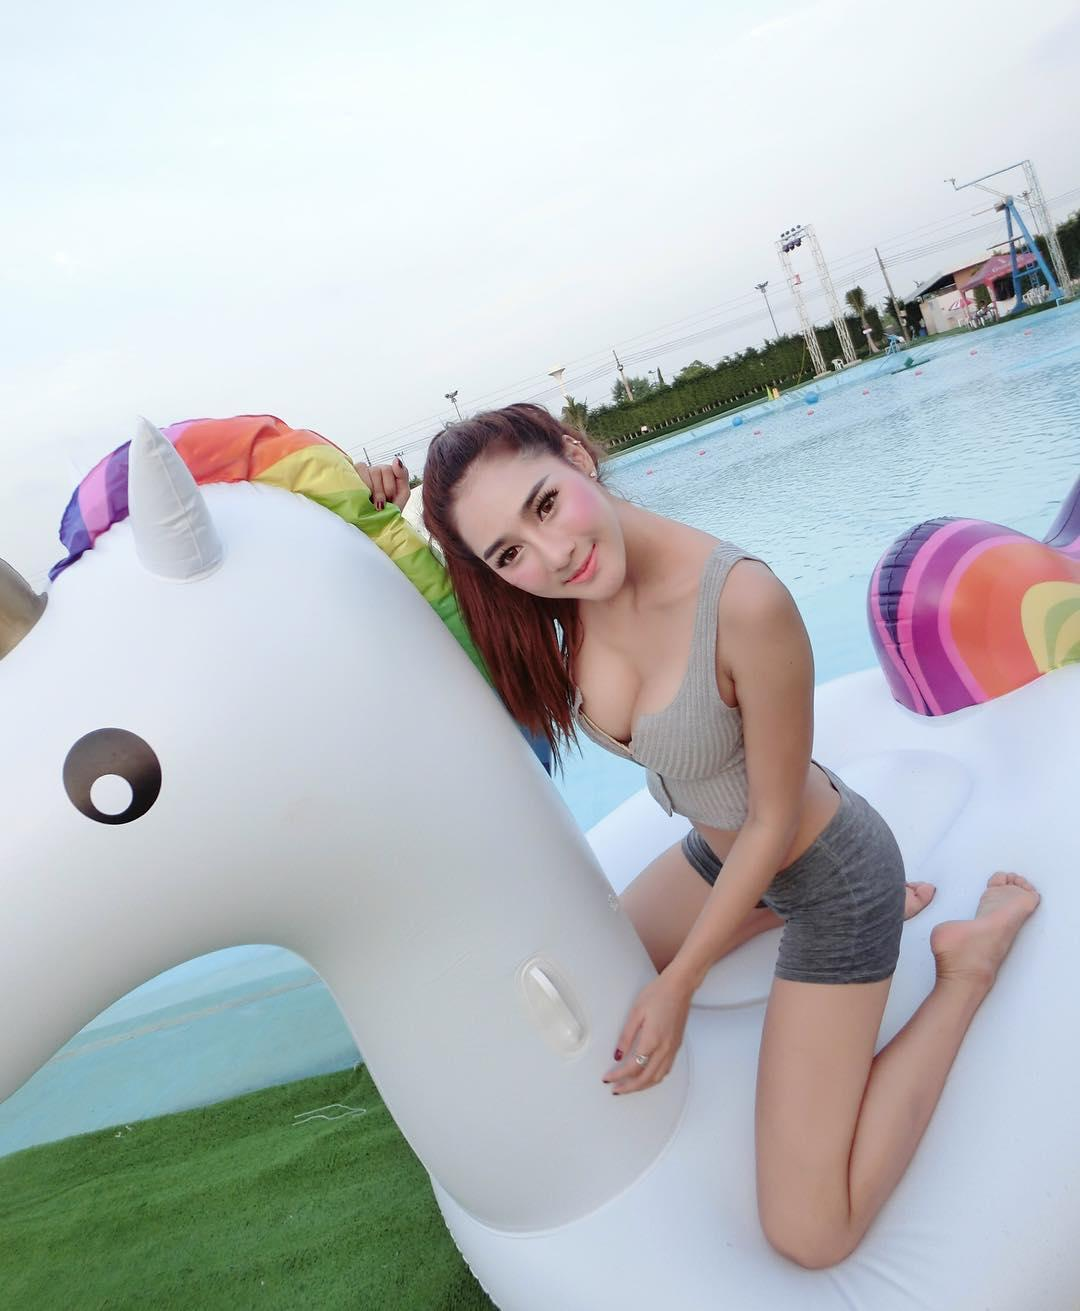 Aomamp Narak Sexy Picture and Photo